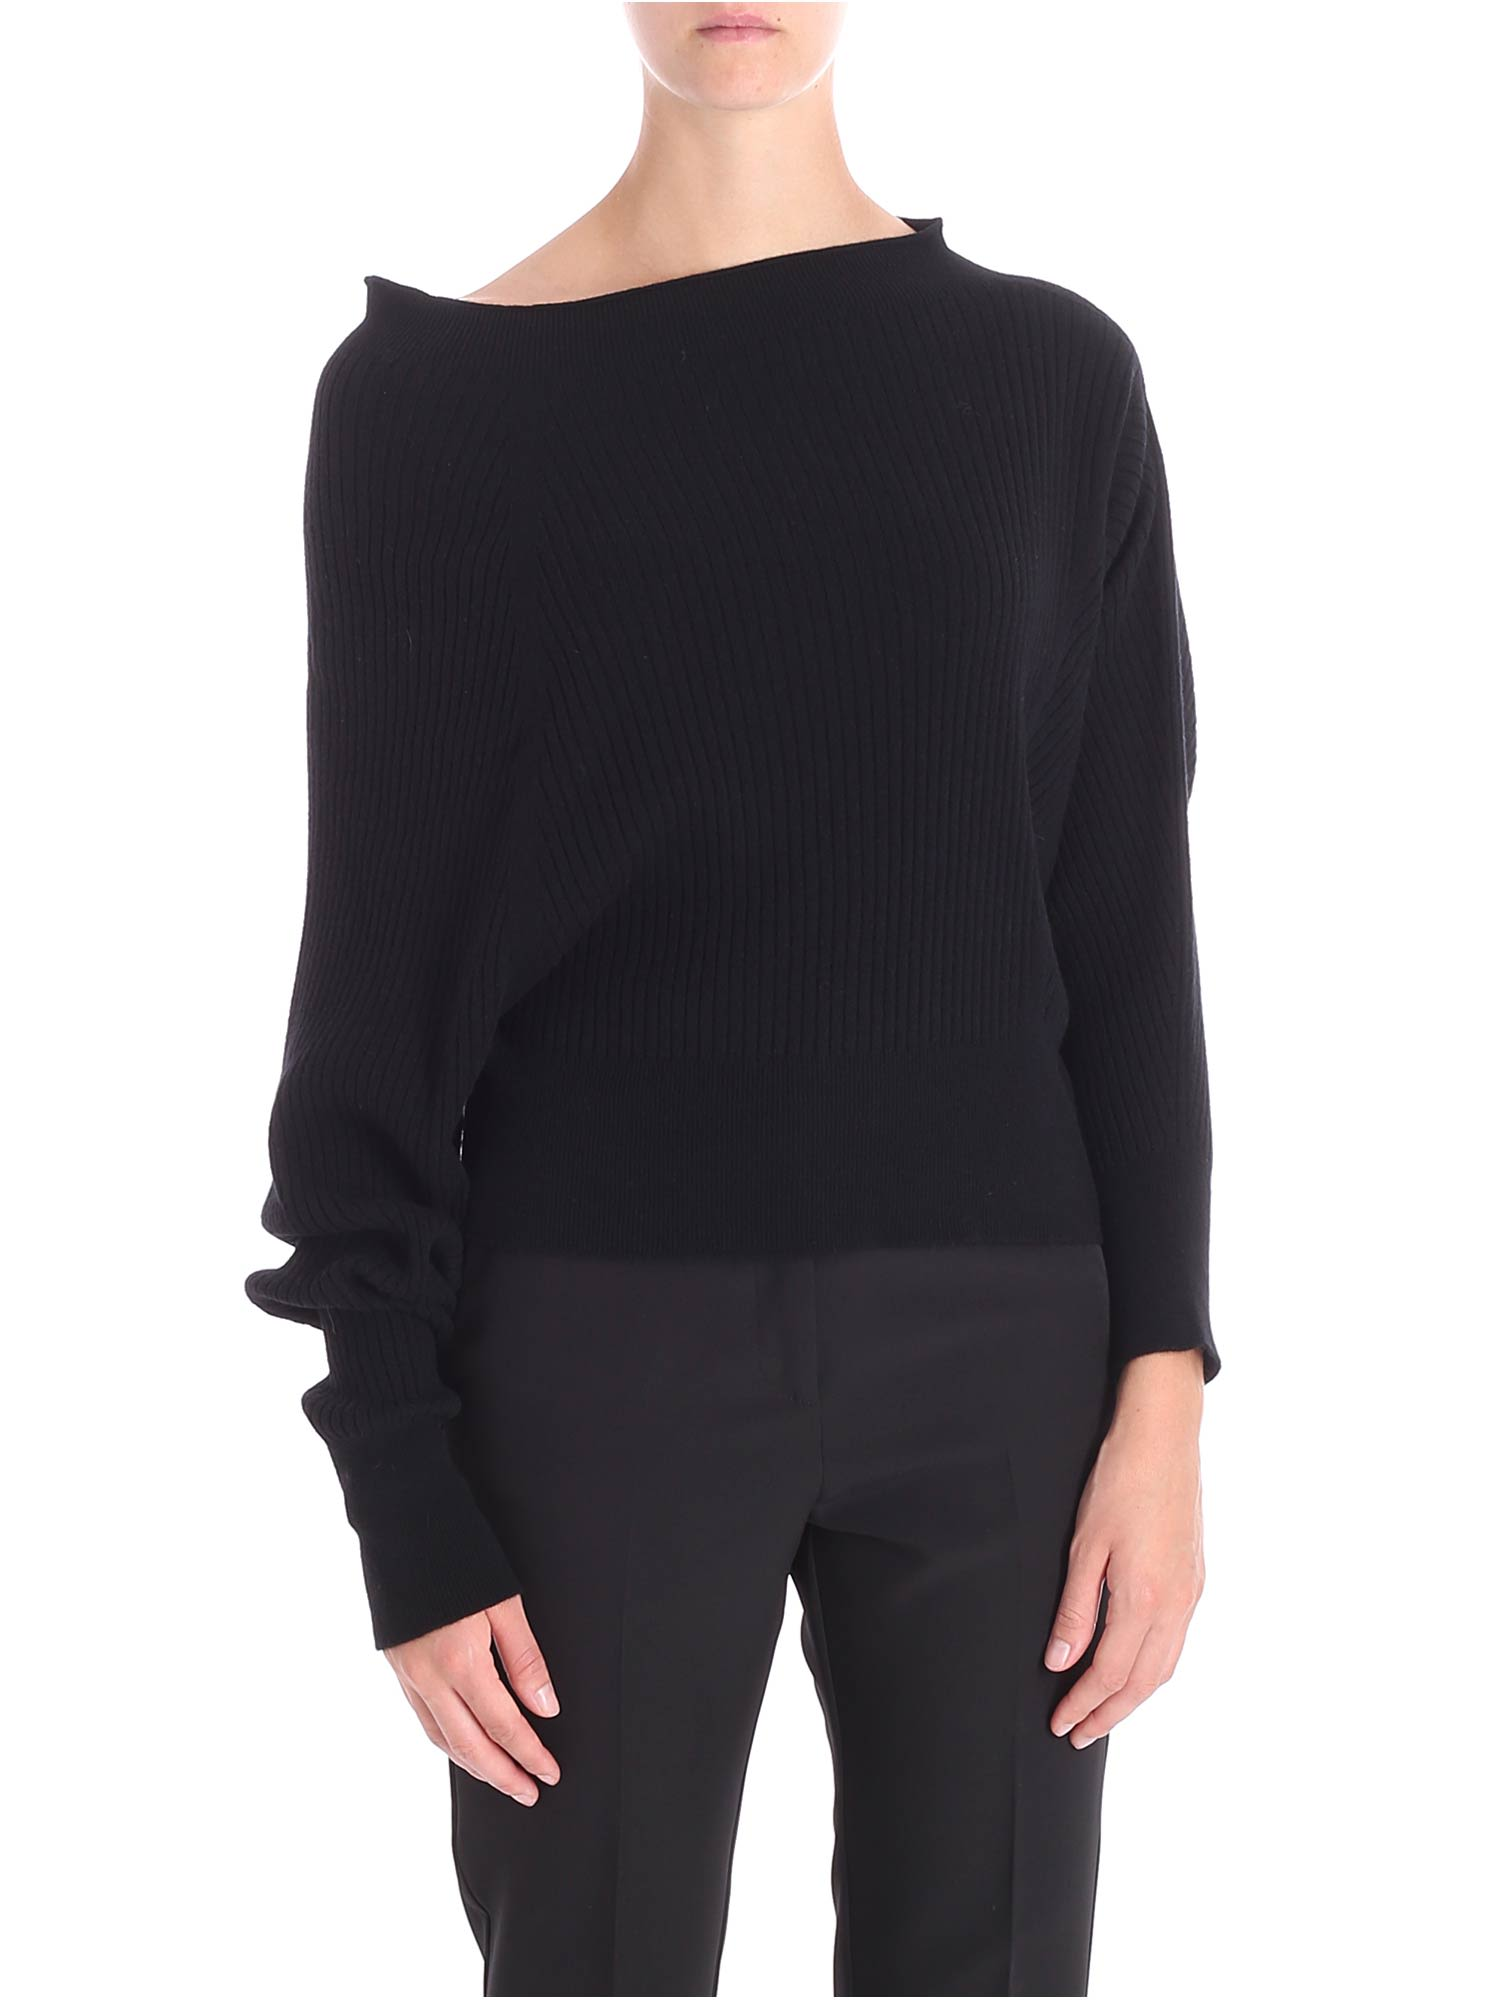 Liviana Conti Wool And Cashmere Blend Sweater